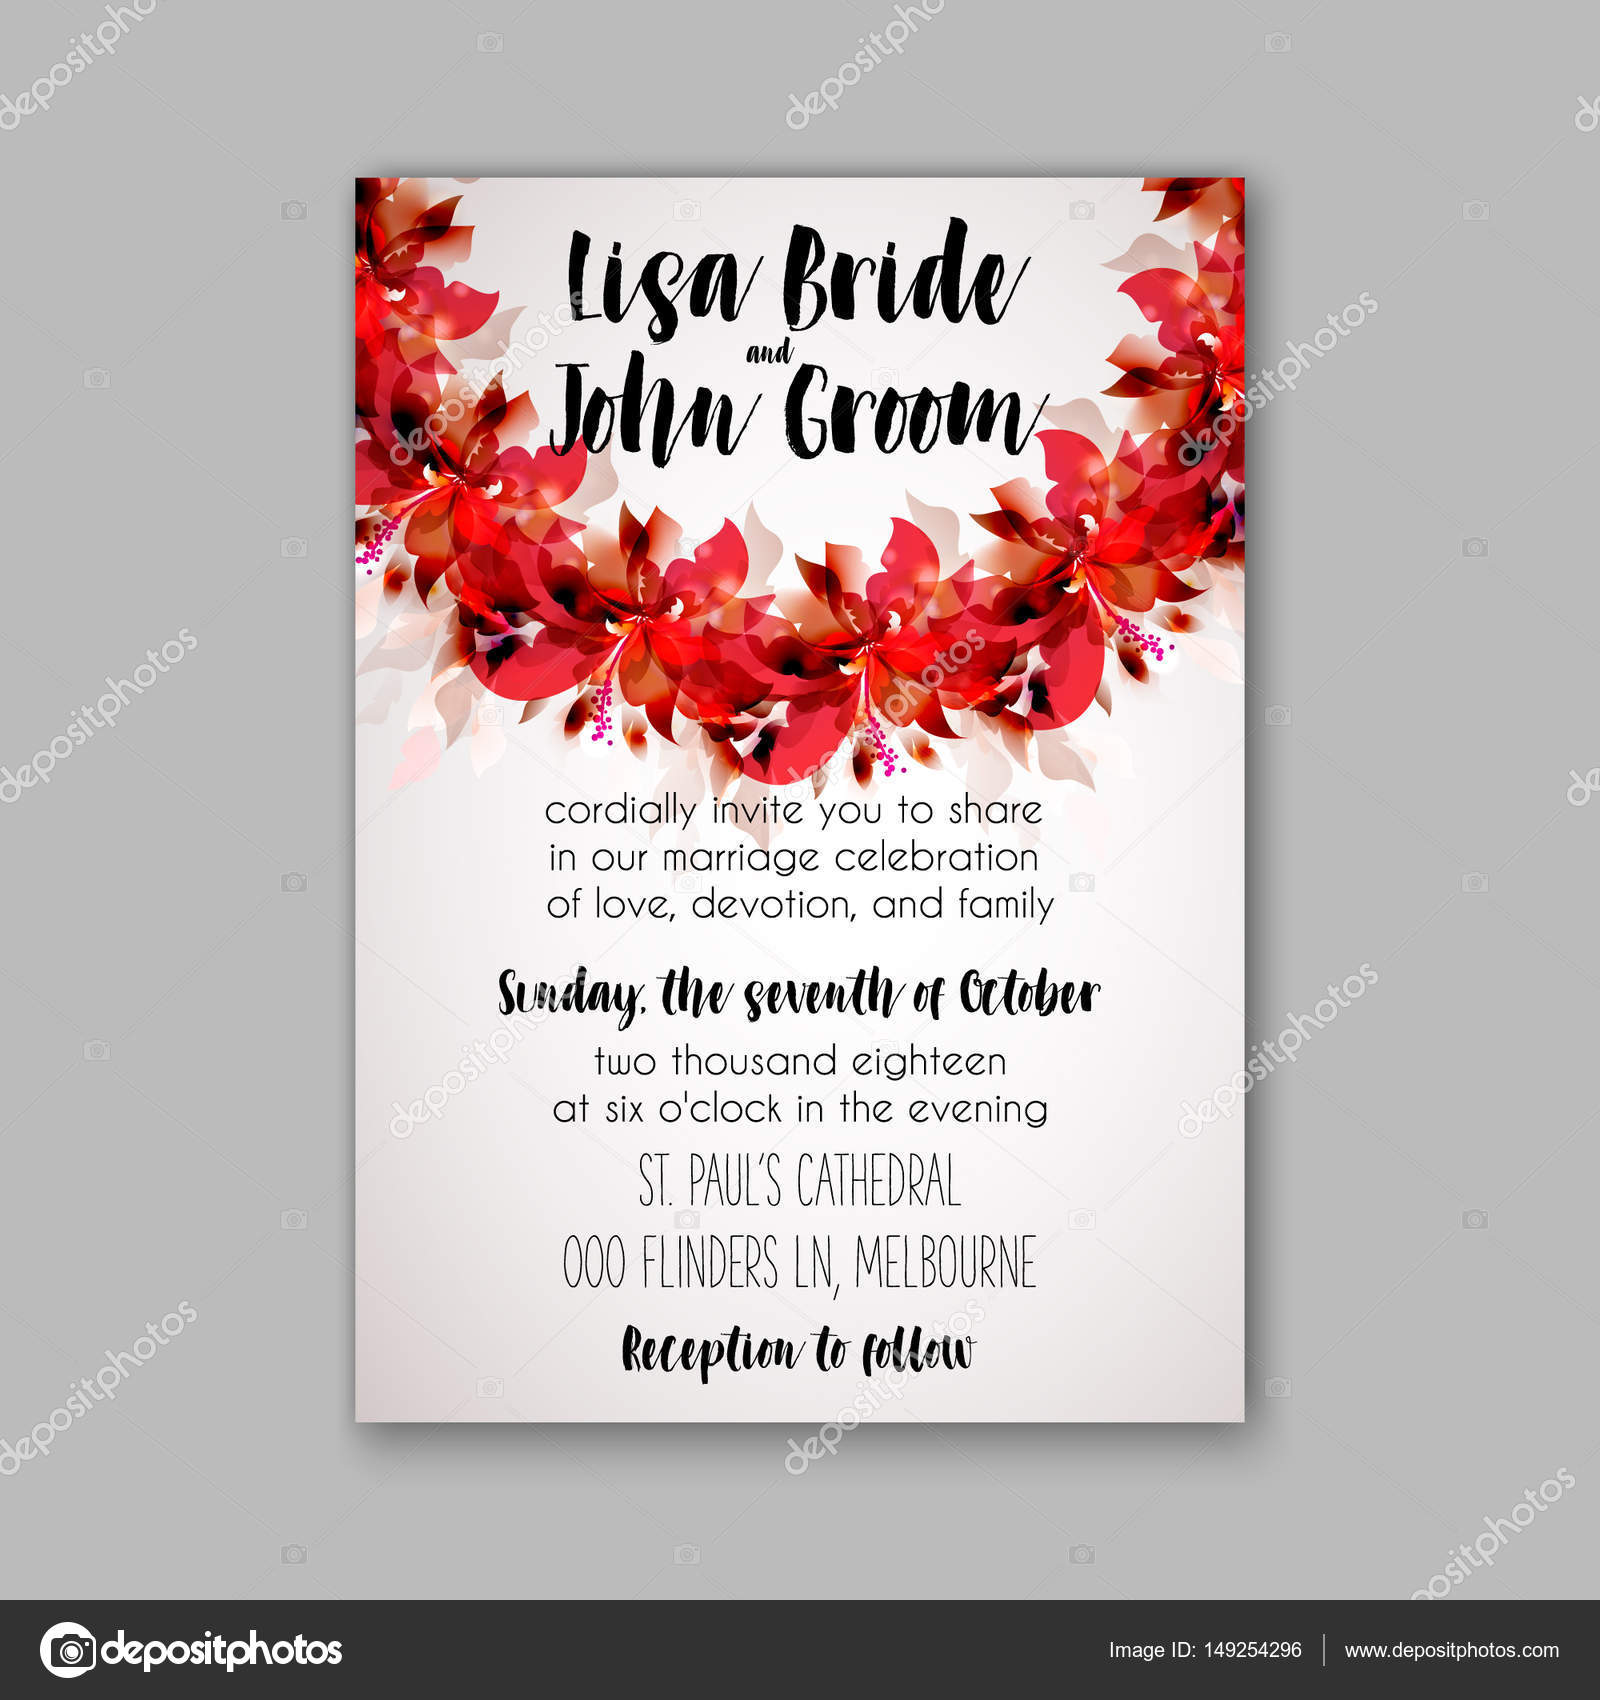 Modern Wedding Invitation By Bride Pictures - Invitations and ...